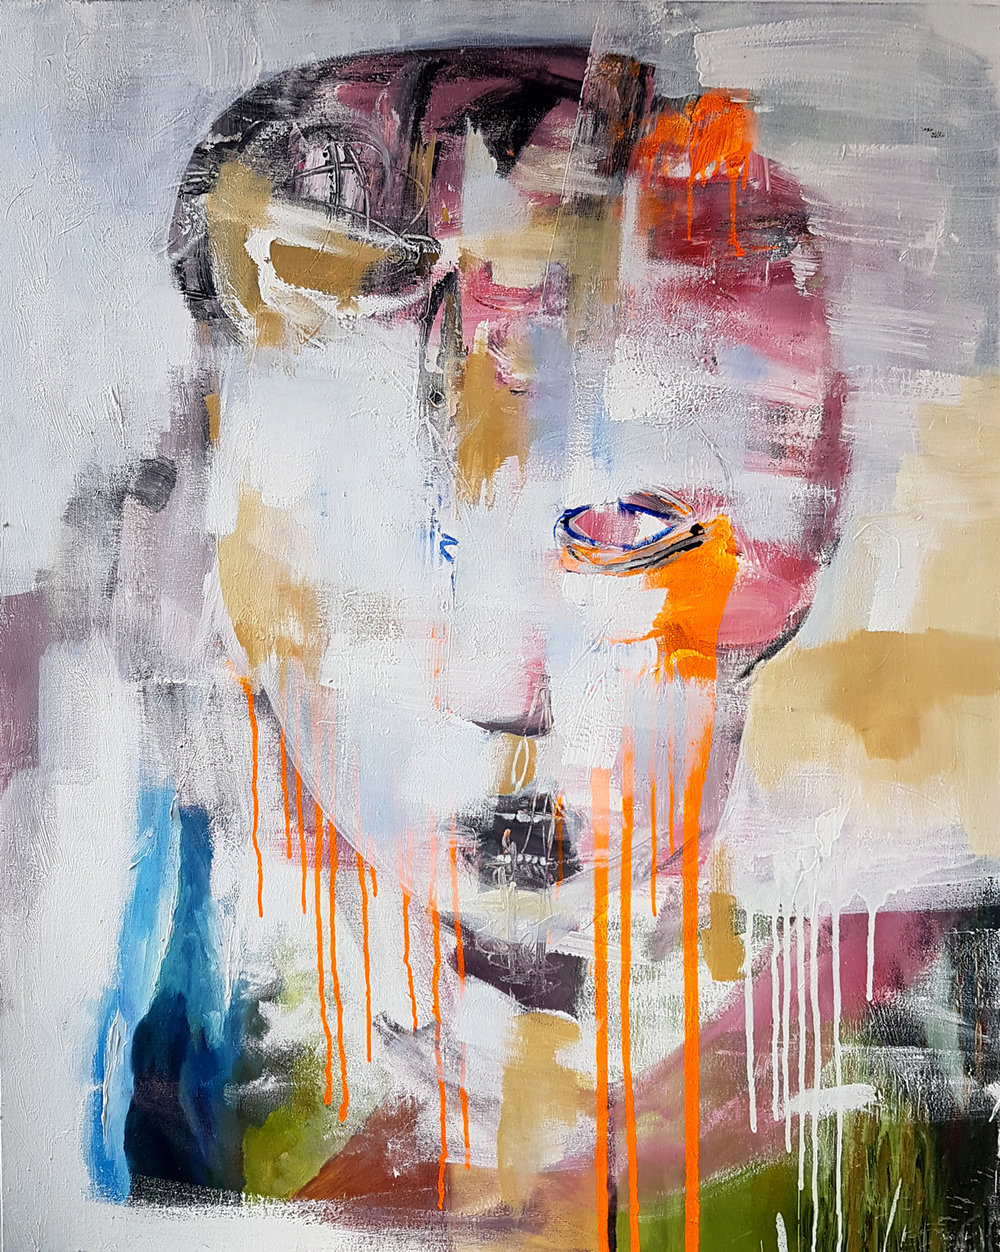 From One minute people / Oil on canvas / 150 x 100 cm / 2017